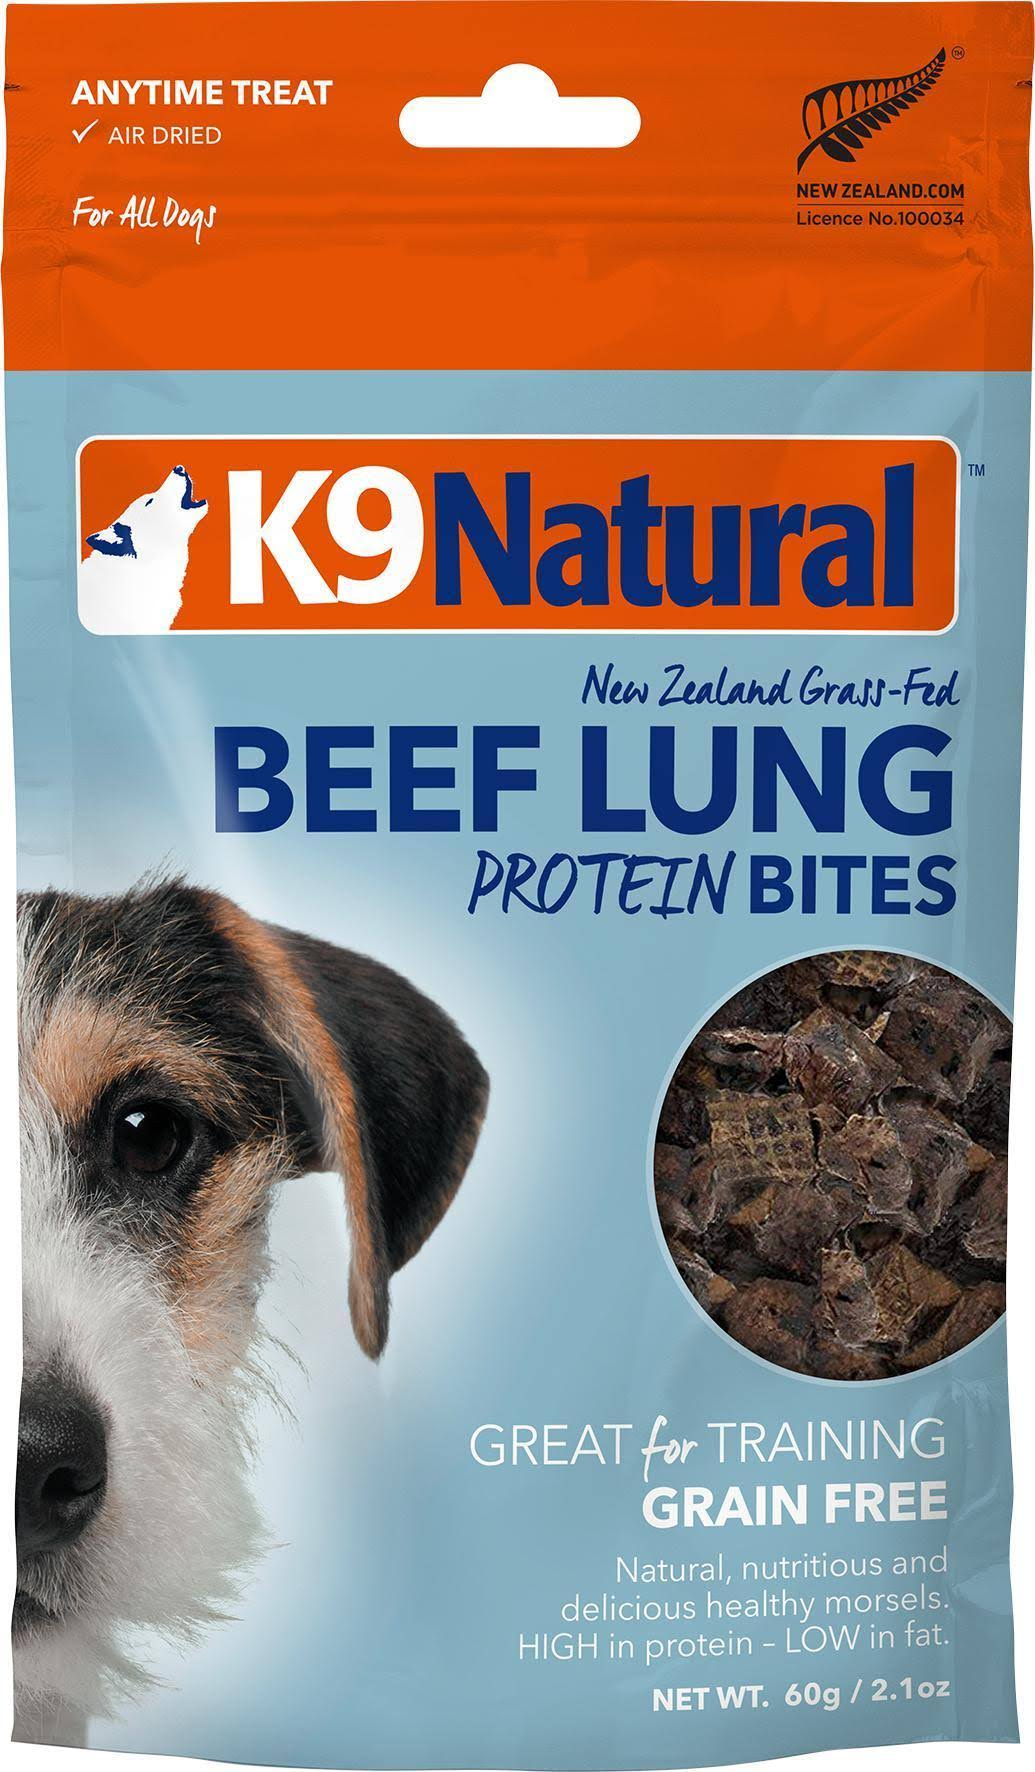 K9 Natural Beef Lung Protein Bites - 60g